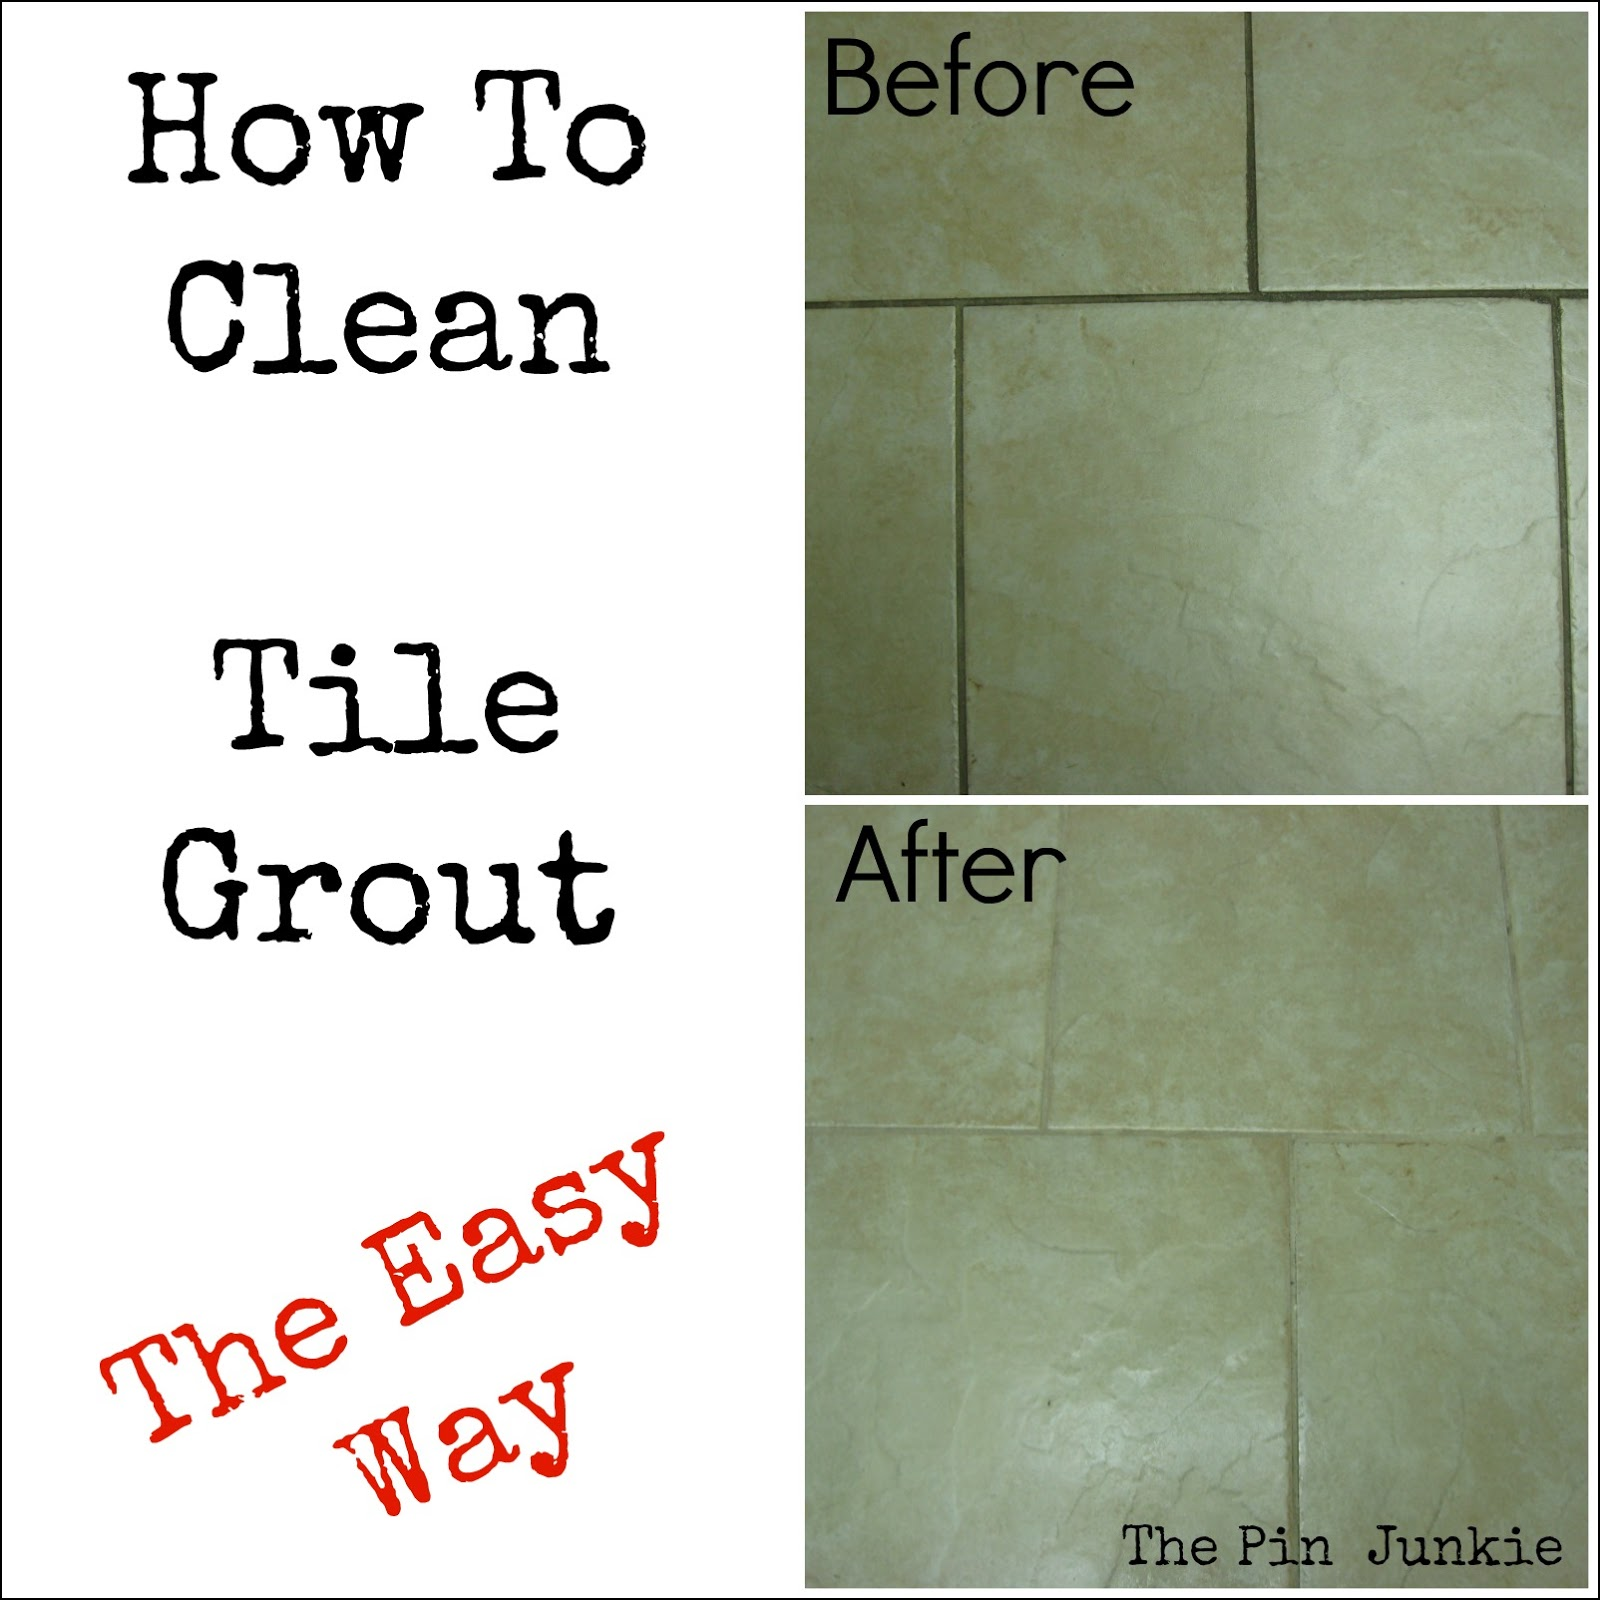 Nice 12 Ceiling Tiles Thick 12 Ceramic Tile Shaped 12 X 12 Ceiling Tile 12 X 12 Ceramic Tile Youthful 12X12 Peel And Stick Floor Tile Green16 By 16 Ceramic Tile How To Clean Tile Grout